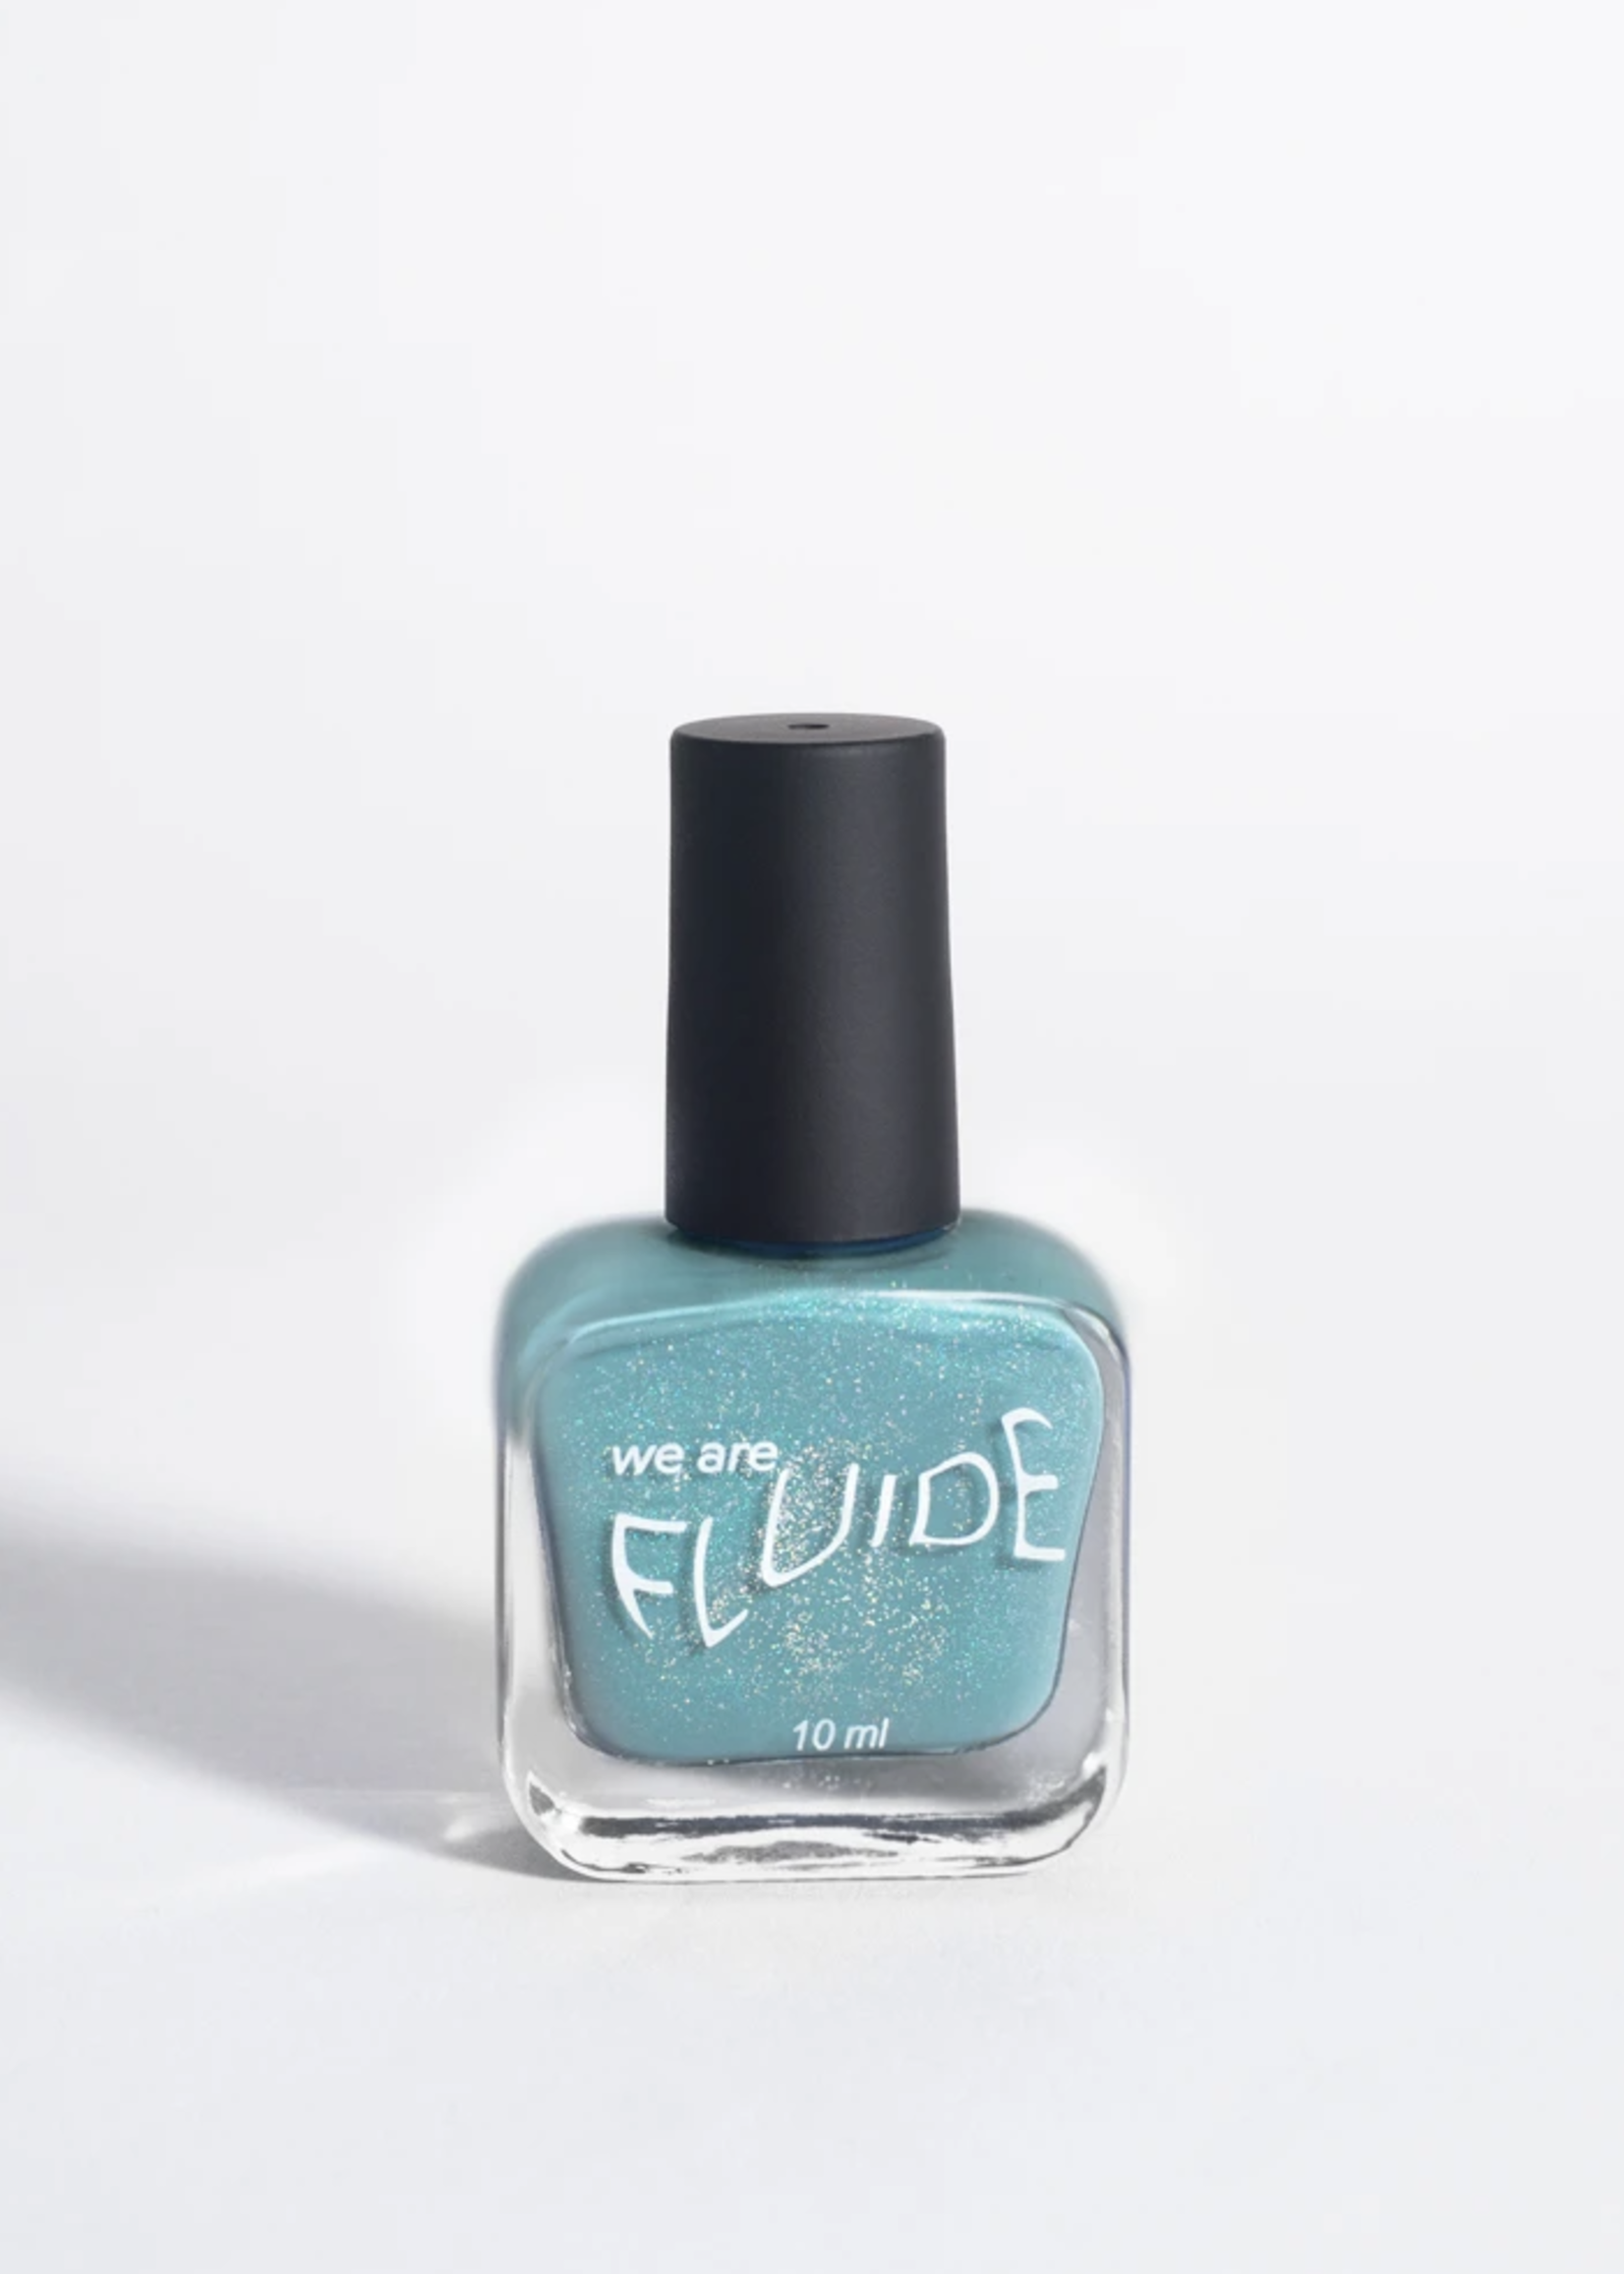 Fluide Beauty 7-Free Nail Polishes by Fluide